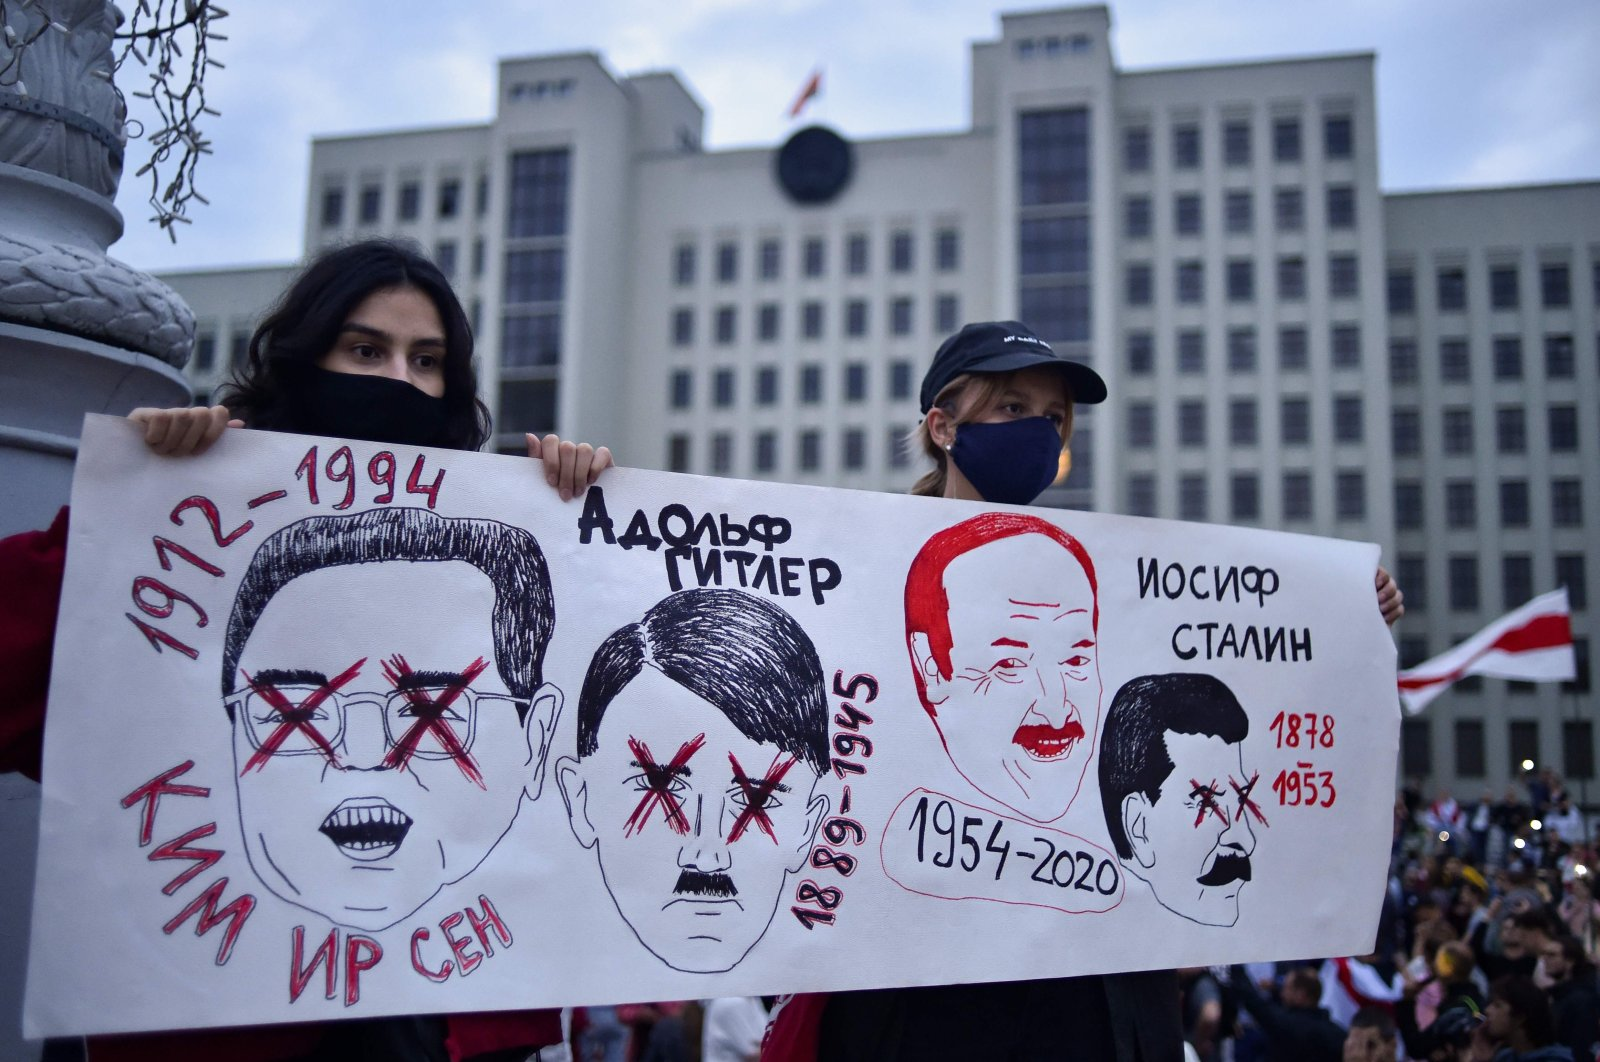 Women hold a placard with drawings of Kim Il Sung, Adolf Hitler, Alexander Lukashenko and Joseph Stalin during a rally to protest disputed presidential election results on Independence Square, Minsk, Belarus, Aug. 20, 2020. (AFP Photo)